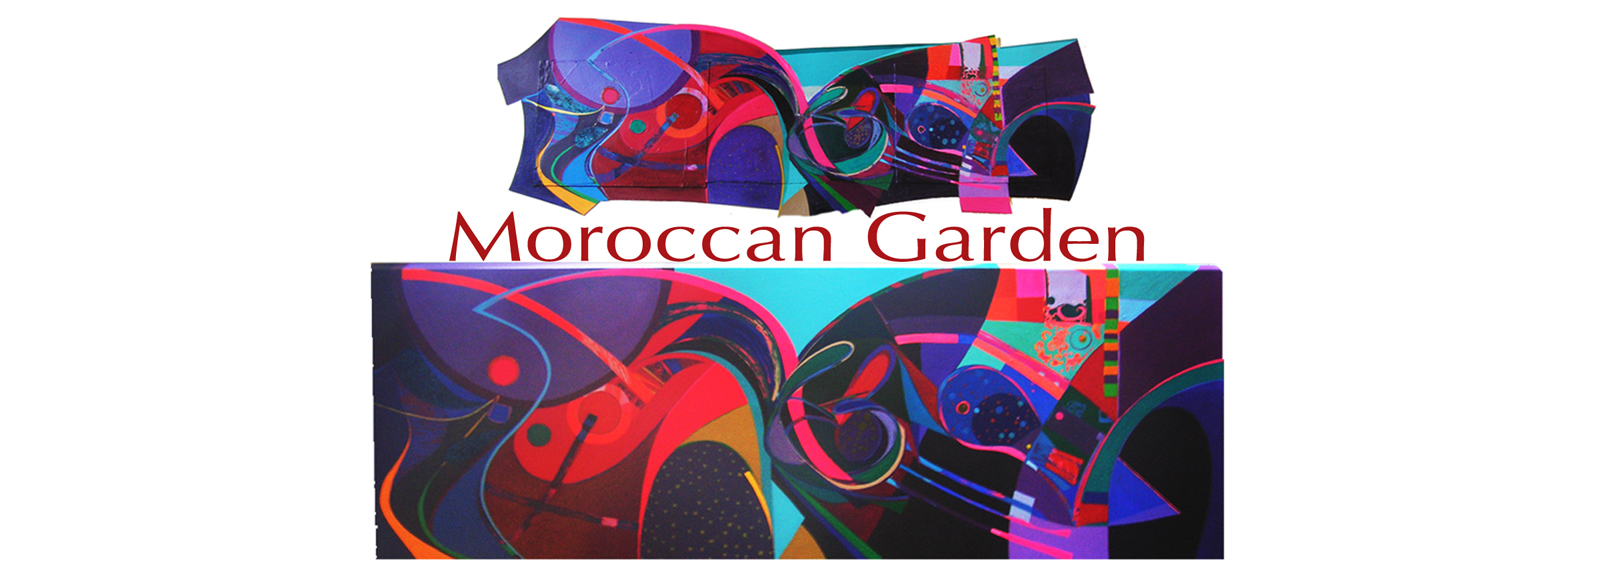 Commission Moroccan Garden